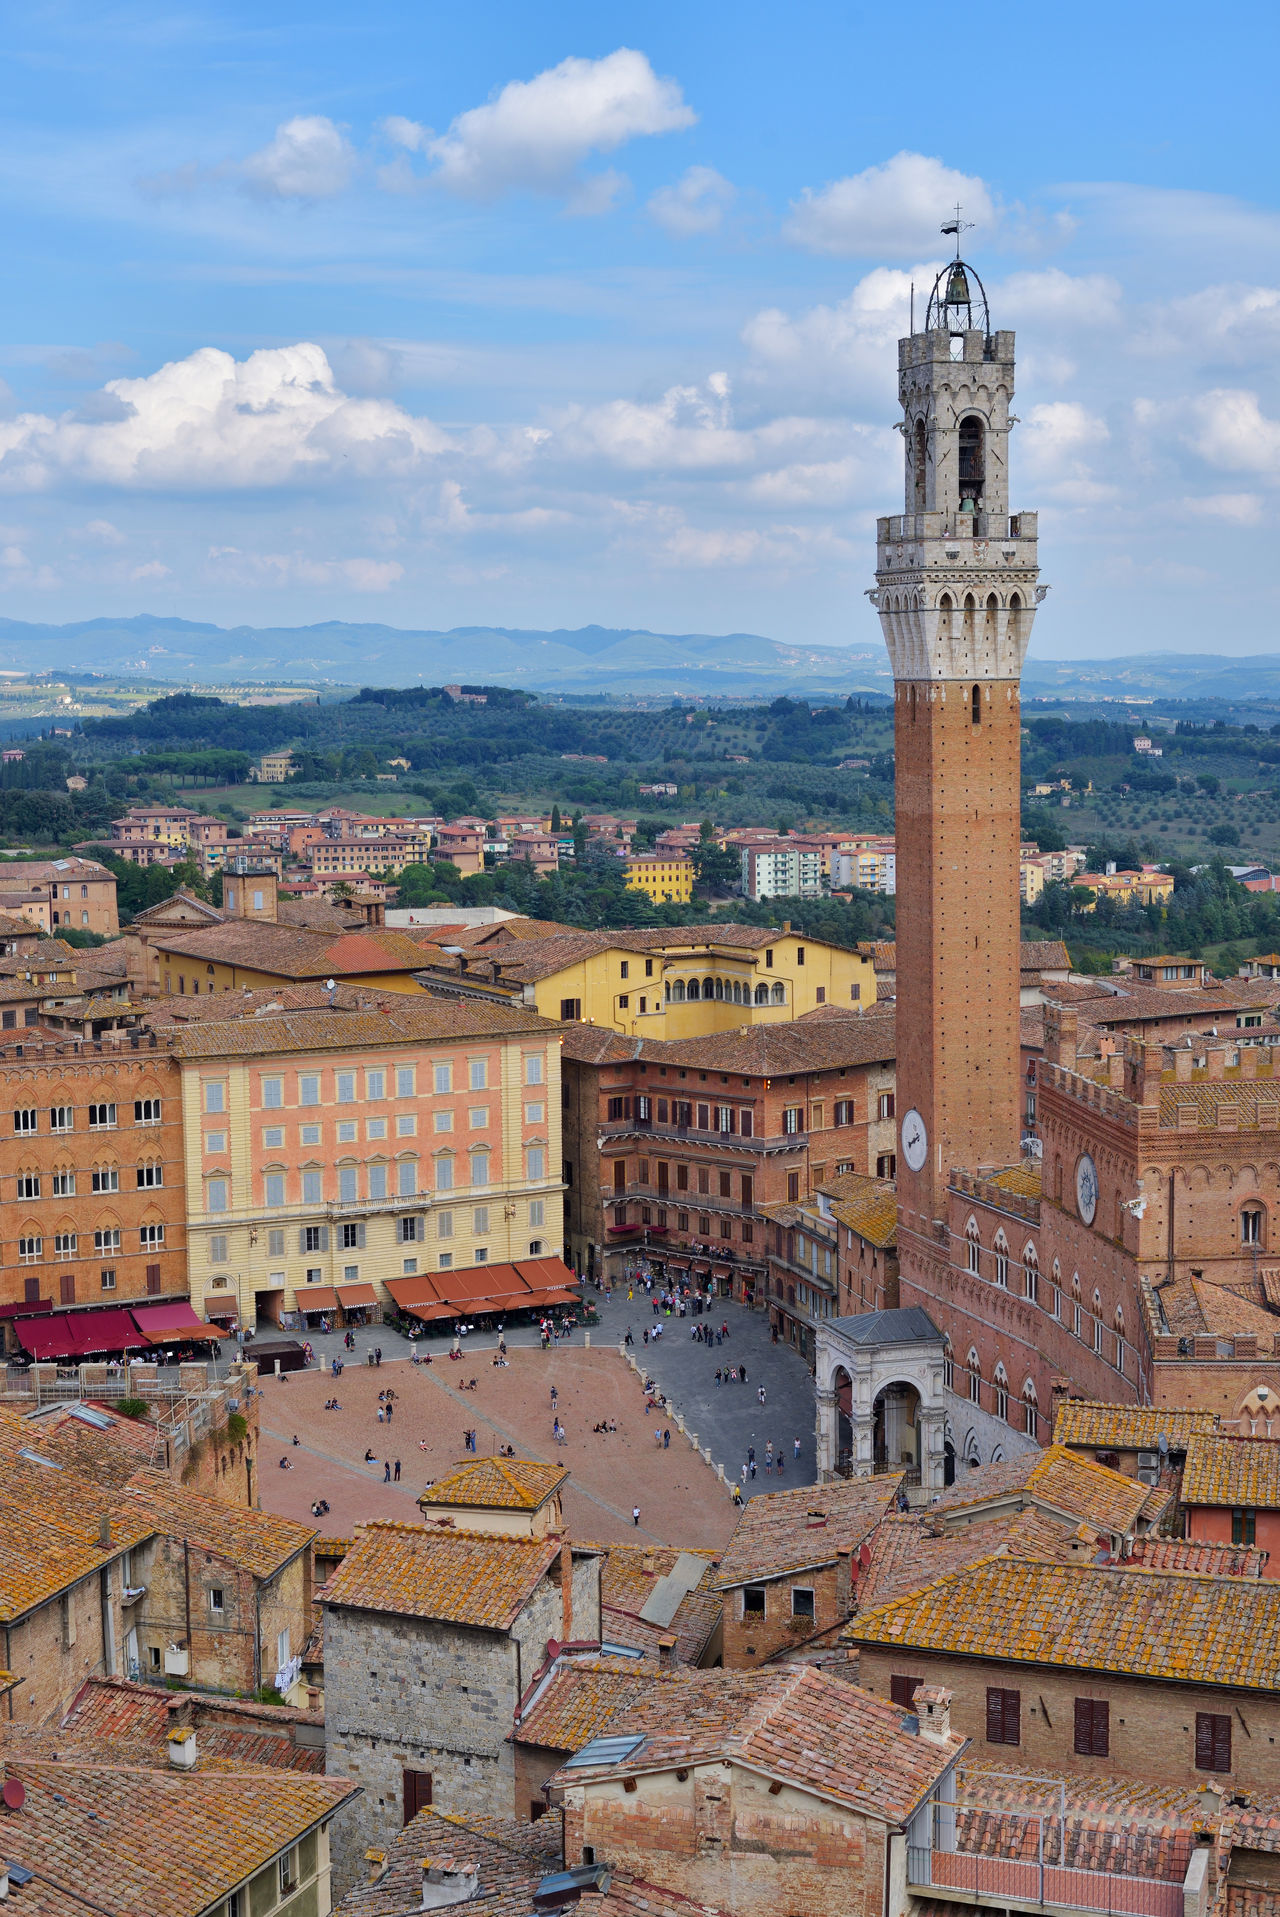 Piazza del campo, tuscan old city center of Siena, Italy Architecture Building Exterior Built Structure City City Cityscape Clock Tower Cloud Cloud - Sky Crowded High Angle View Italy Old Town Piazza Del Campo Residential District Residential Structure Roof Siena Sky Tall - High Tower Town Travel Destinations Tuscany Malephotographerofthemonth